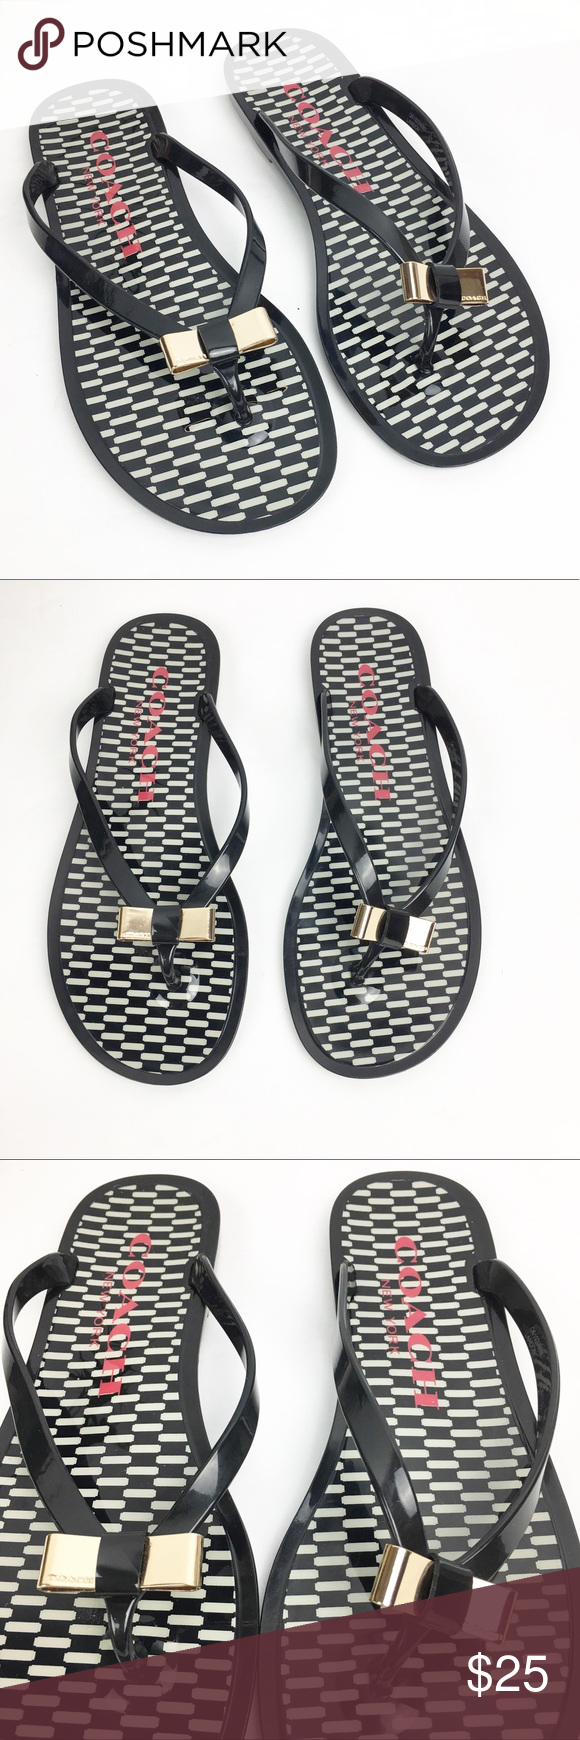 5bb20826adeb6e Coach Black   White Landon Jelly Bow Sandals Sz 7B Coach Black   White  Landon Jelly Bow Thong Flip Flop Sandals Size 7B. These are gently worn  condition